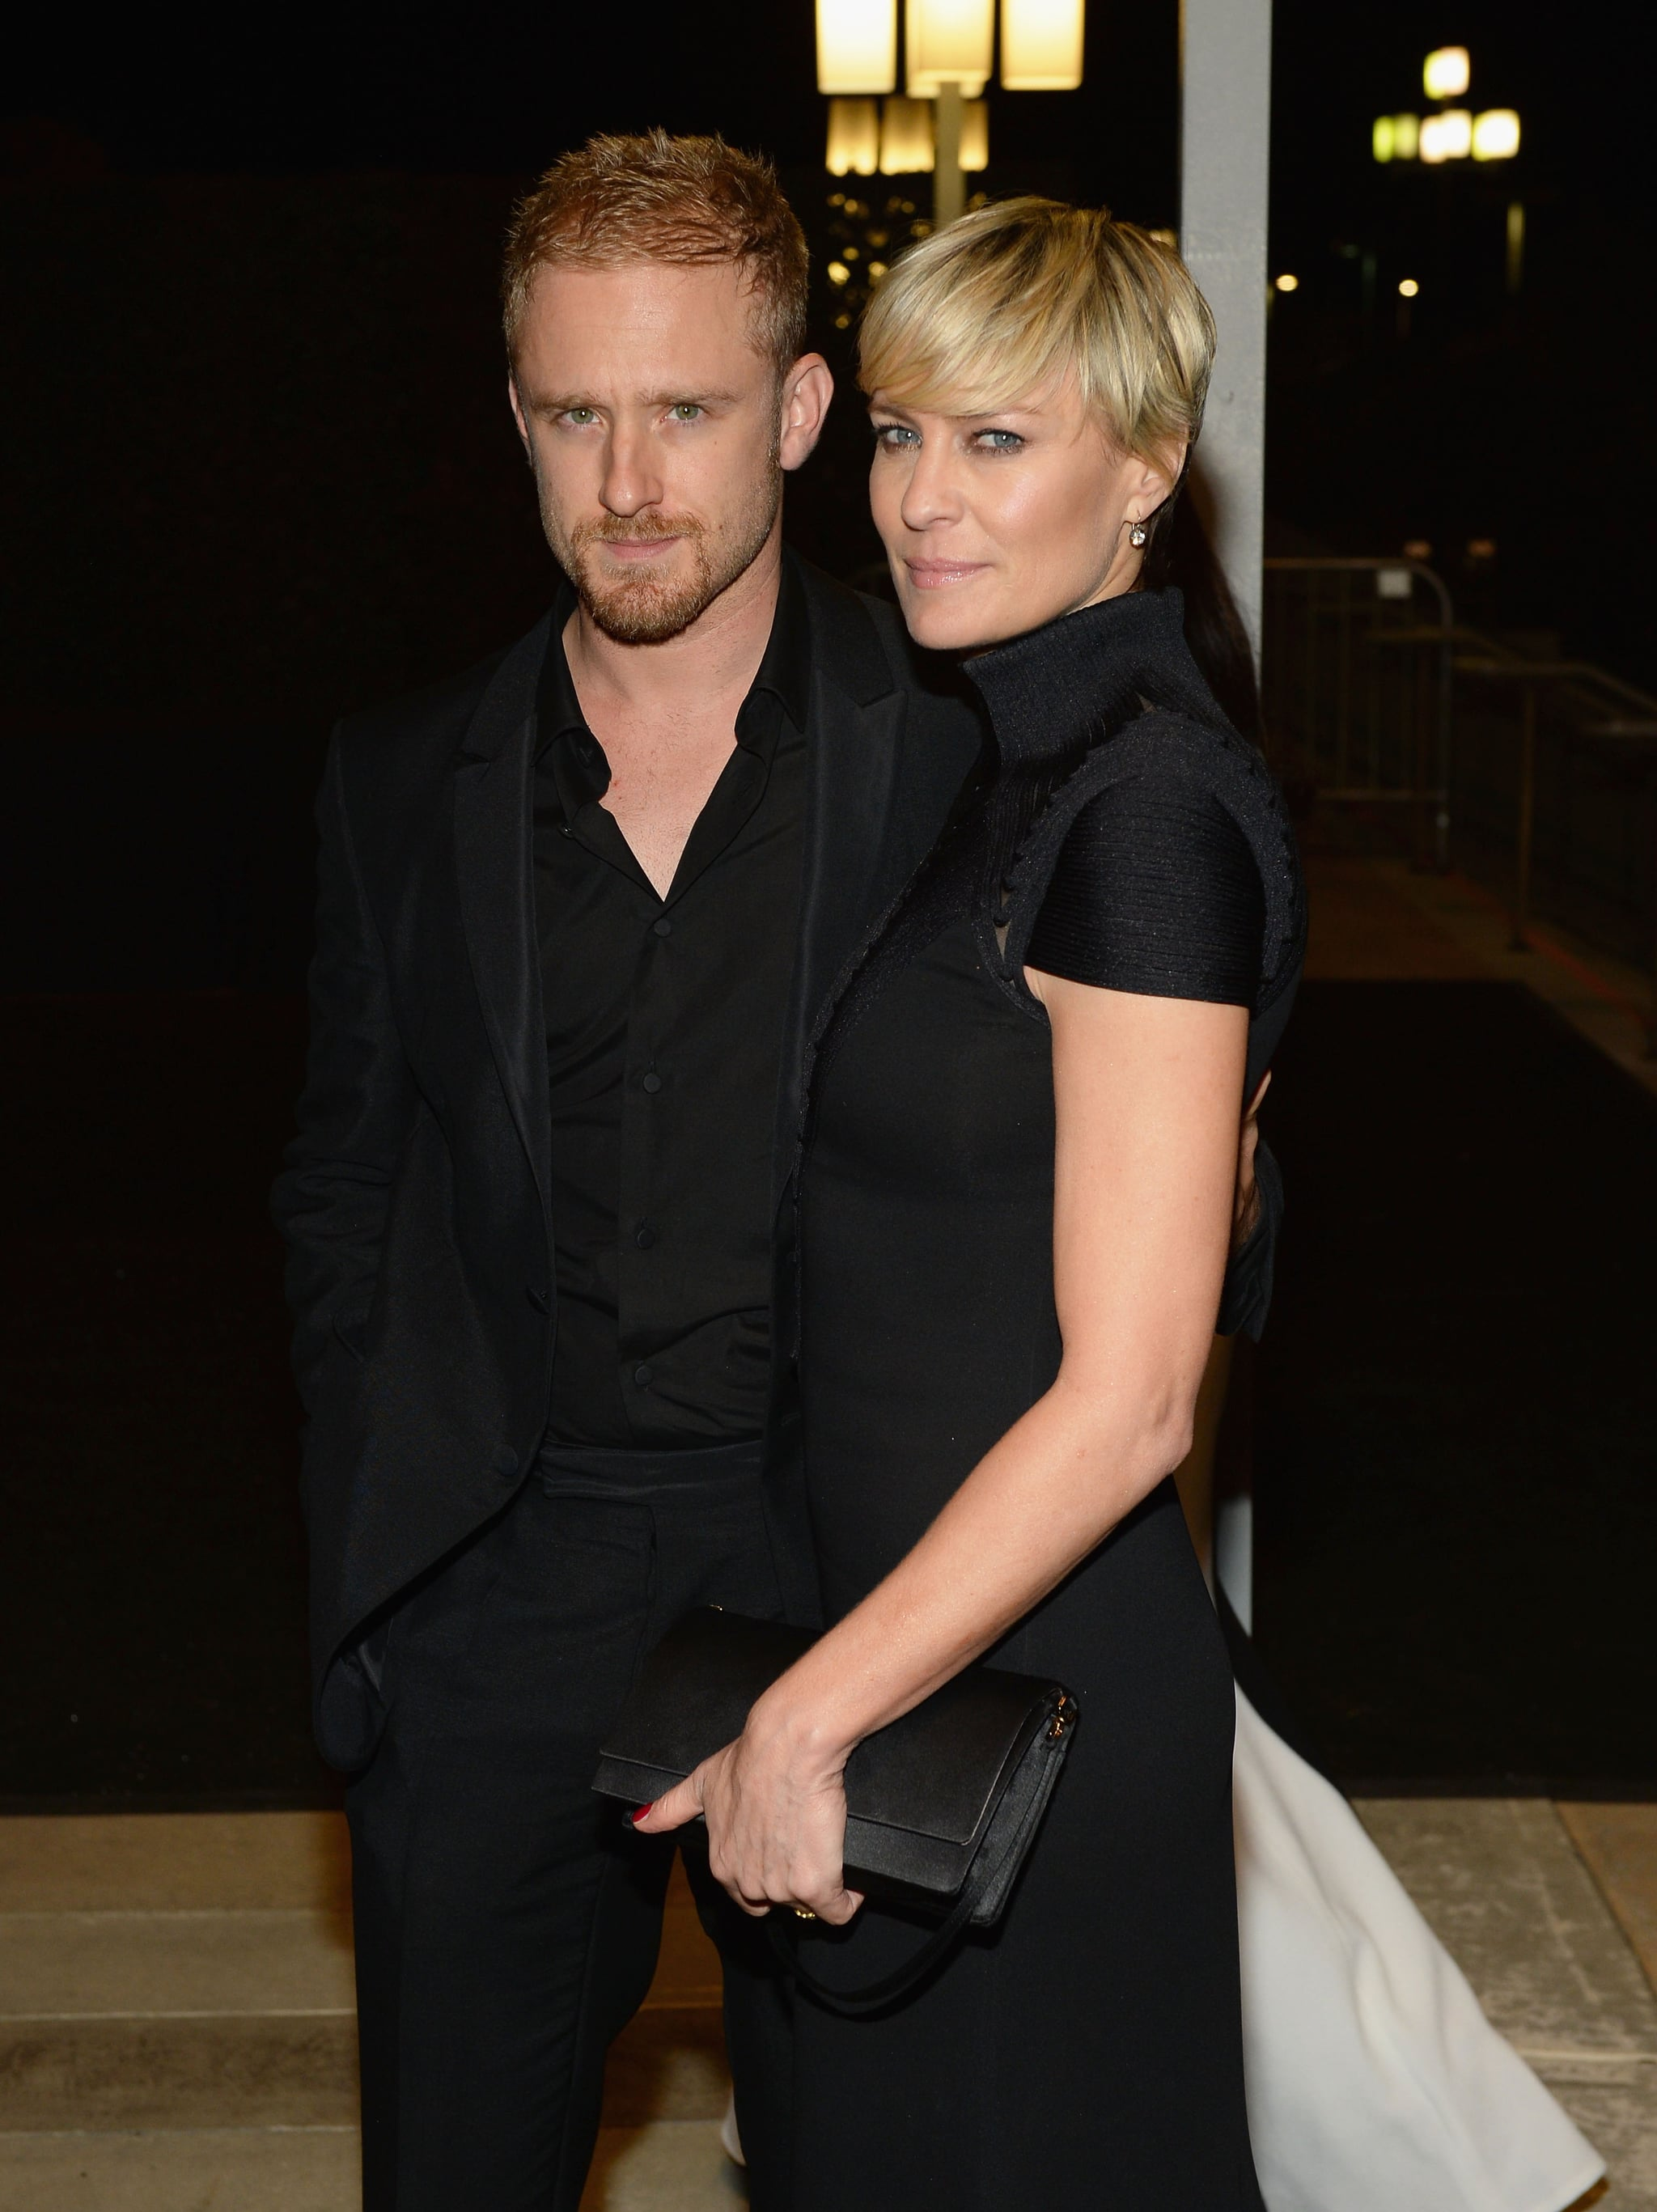 Robin Wright and Ben Foster attended the 2013 Emmys Governors Ball.